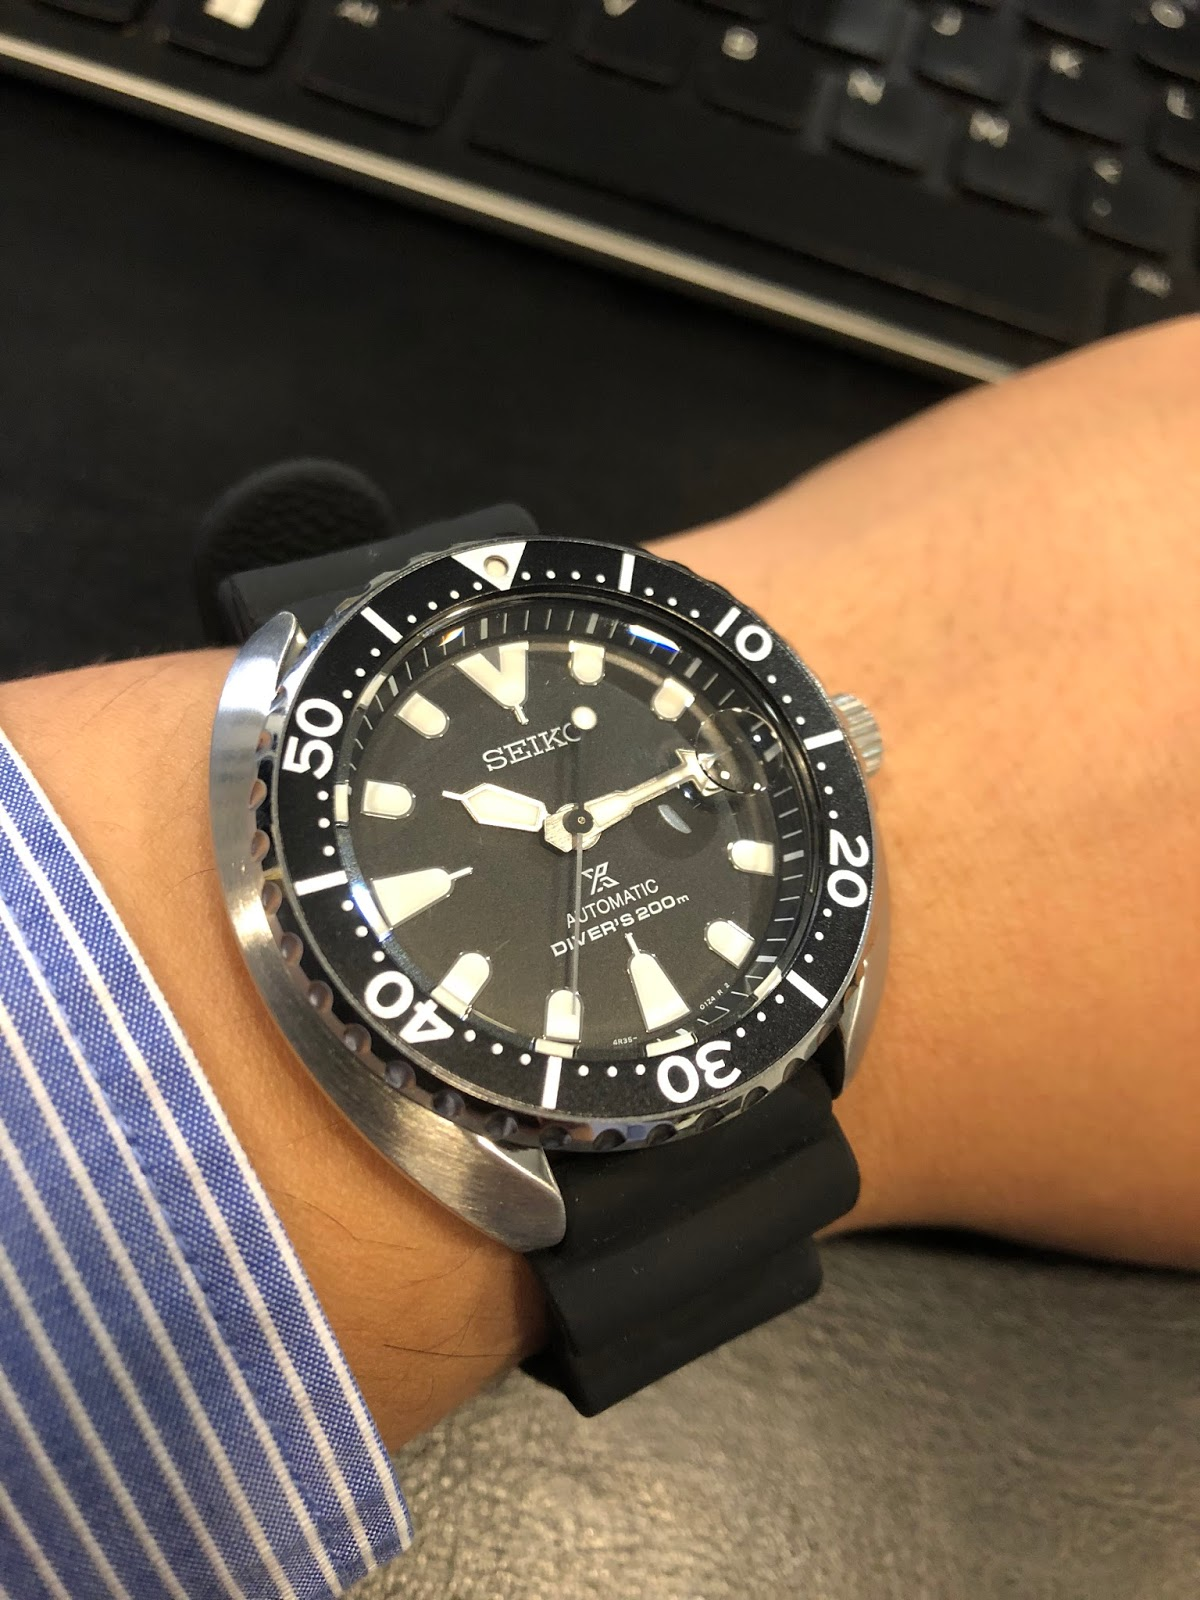 My Eastern Watch Collection Seiko Prospex Mini Turtle Srpc37k1 Skx007k2 Automatic Divers 200m Black Dial Ended 2017 With Another Take Of The Iconic 6309 Diver Yesteryear When Brand Launched Re Craft Edition Back In 2016 Under Series